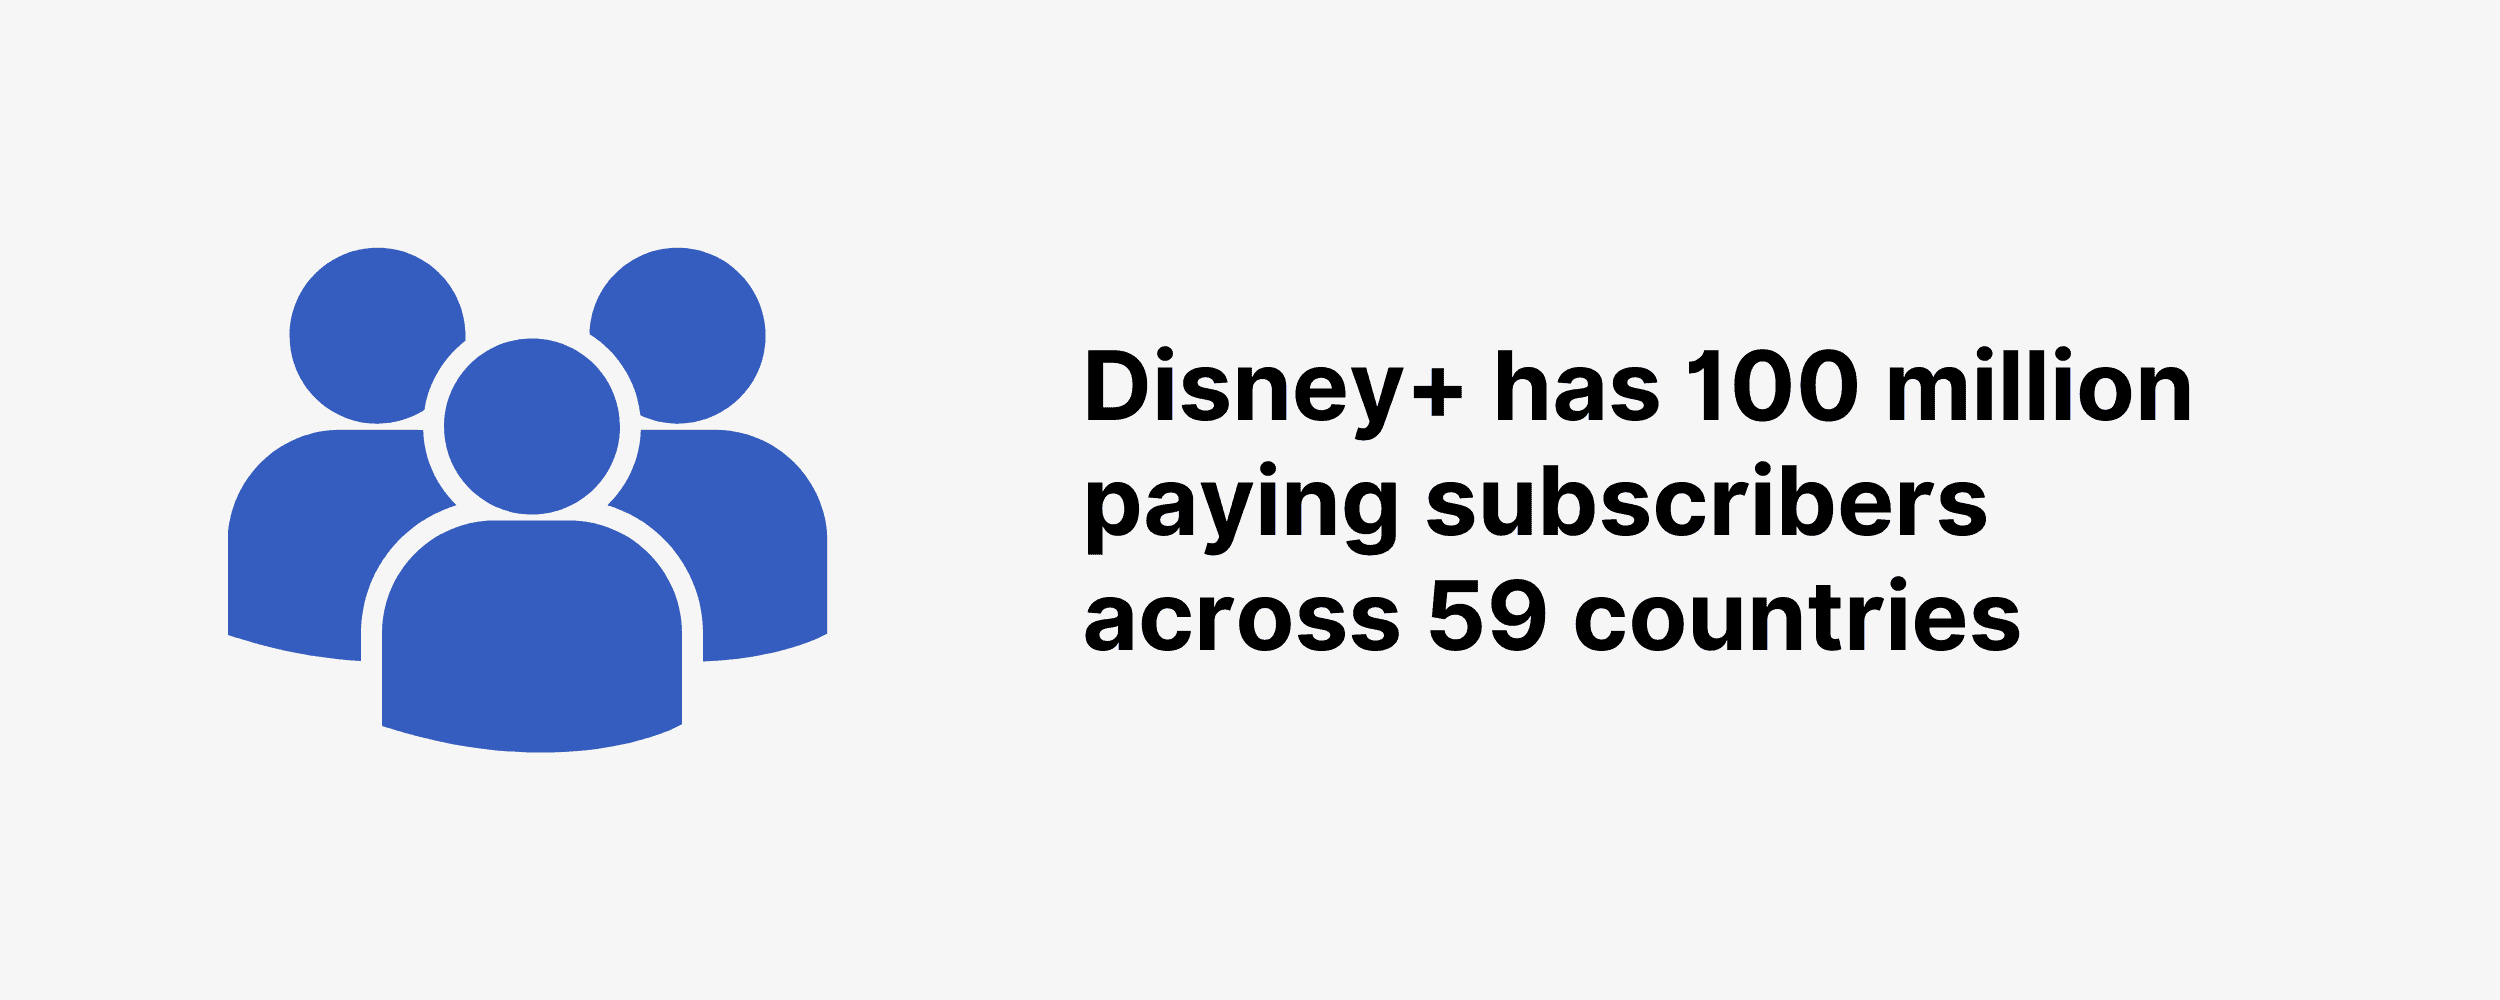 Disney+ has 100 million paying subscribers across 59 countries